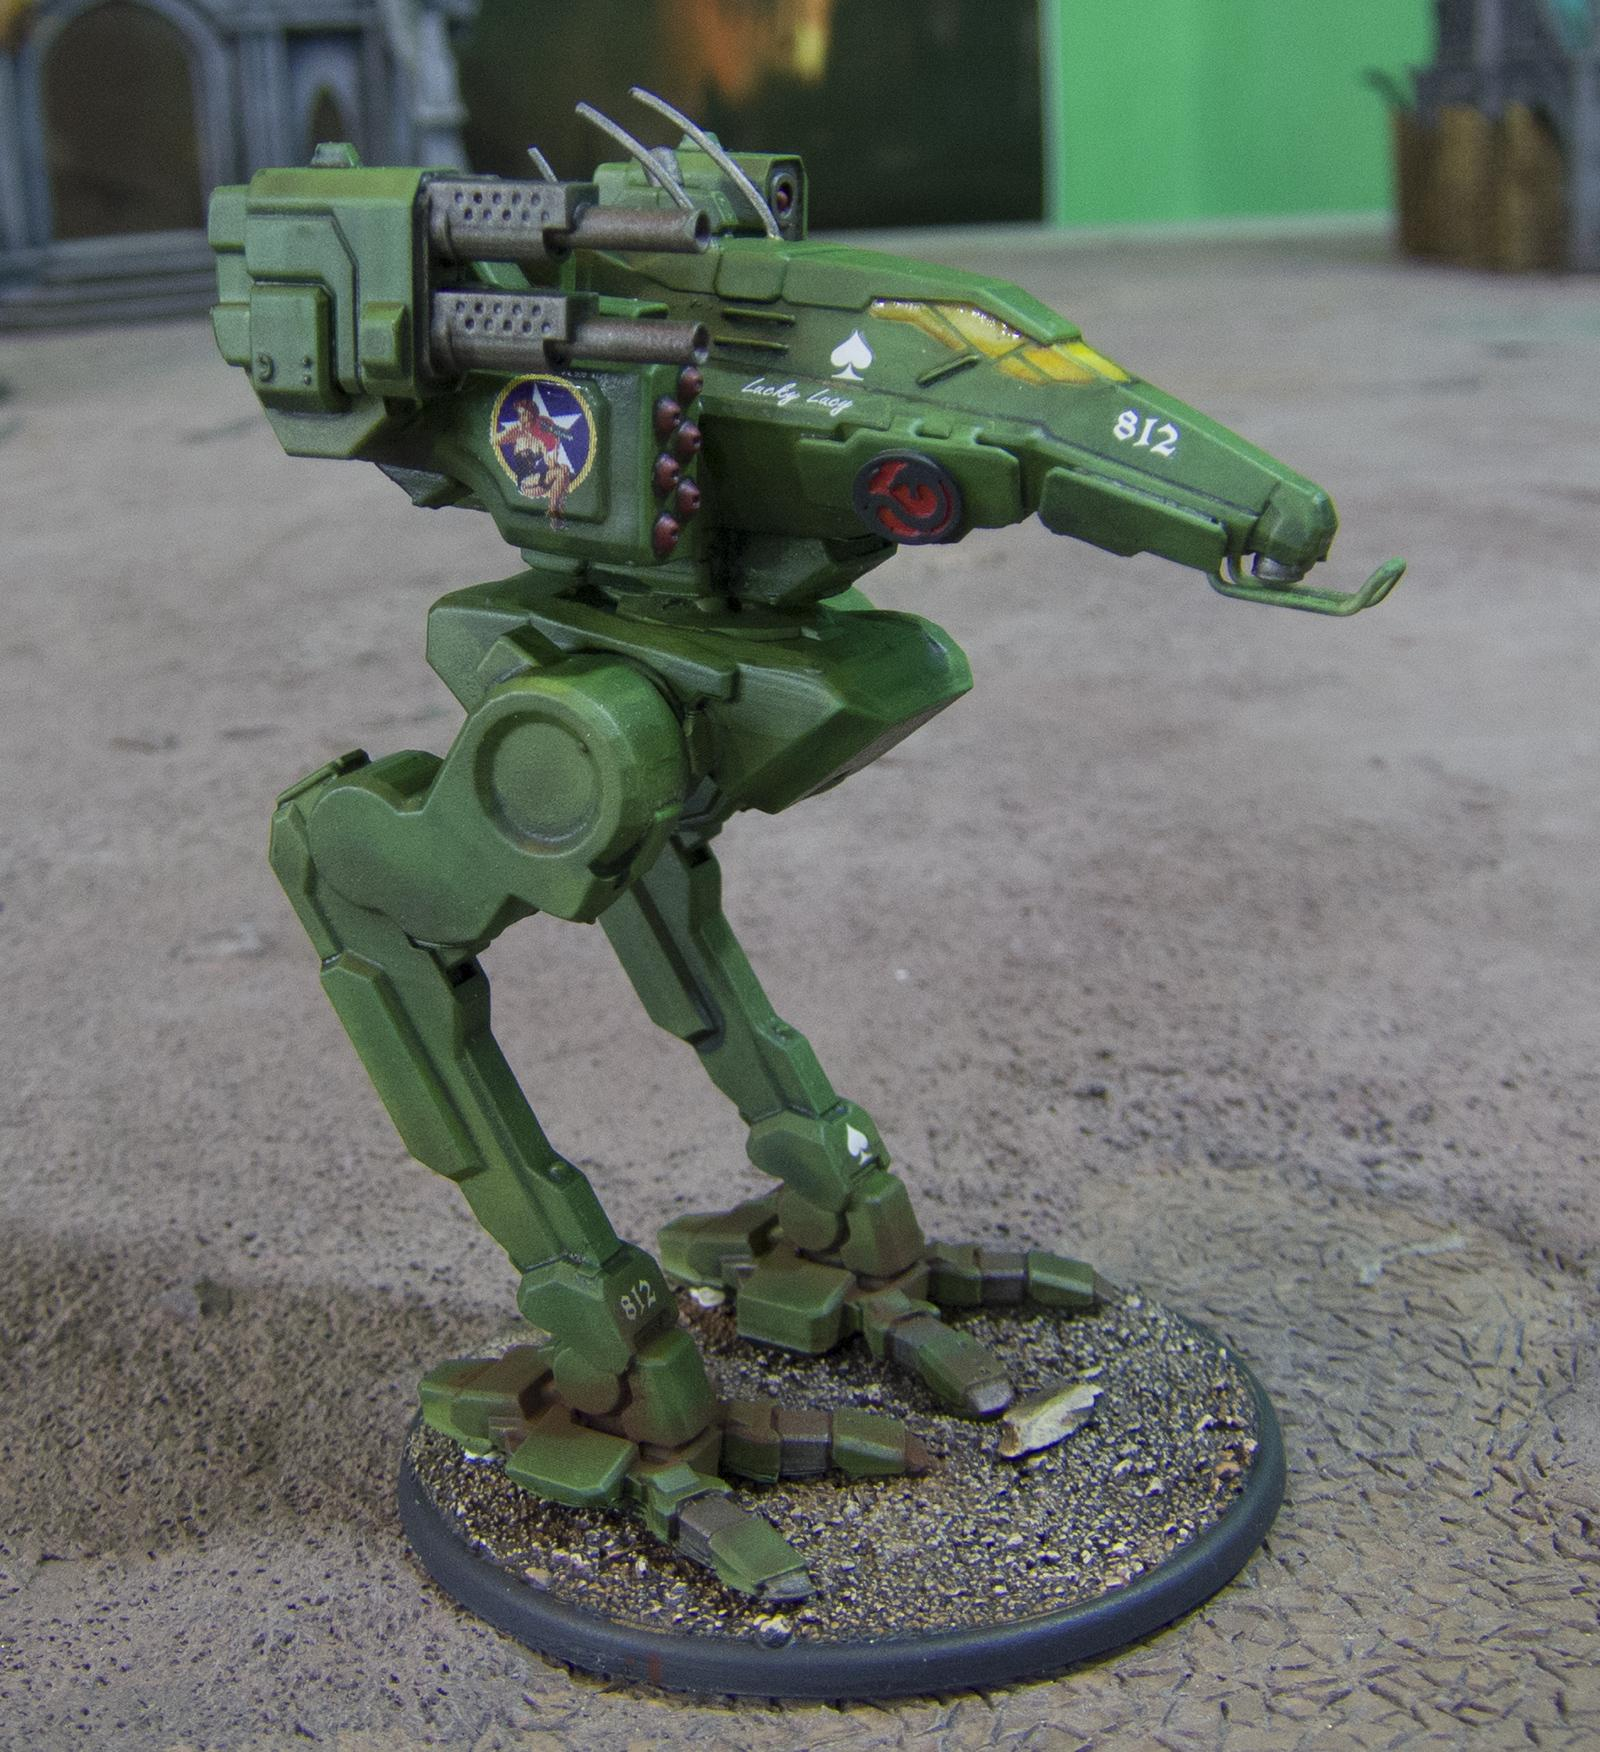 3d Printing, Anycubic Photon, Battle Tech, Battlemech, Battletech, Dlp, Mech Warrior, Mechwarrior, Mwo, Raven, Rvn-3l